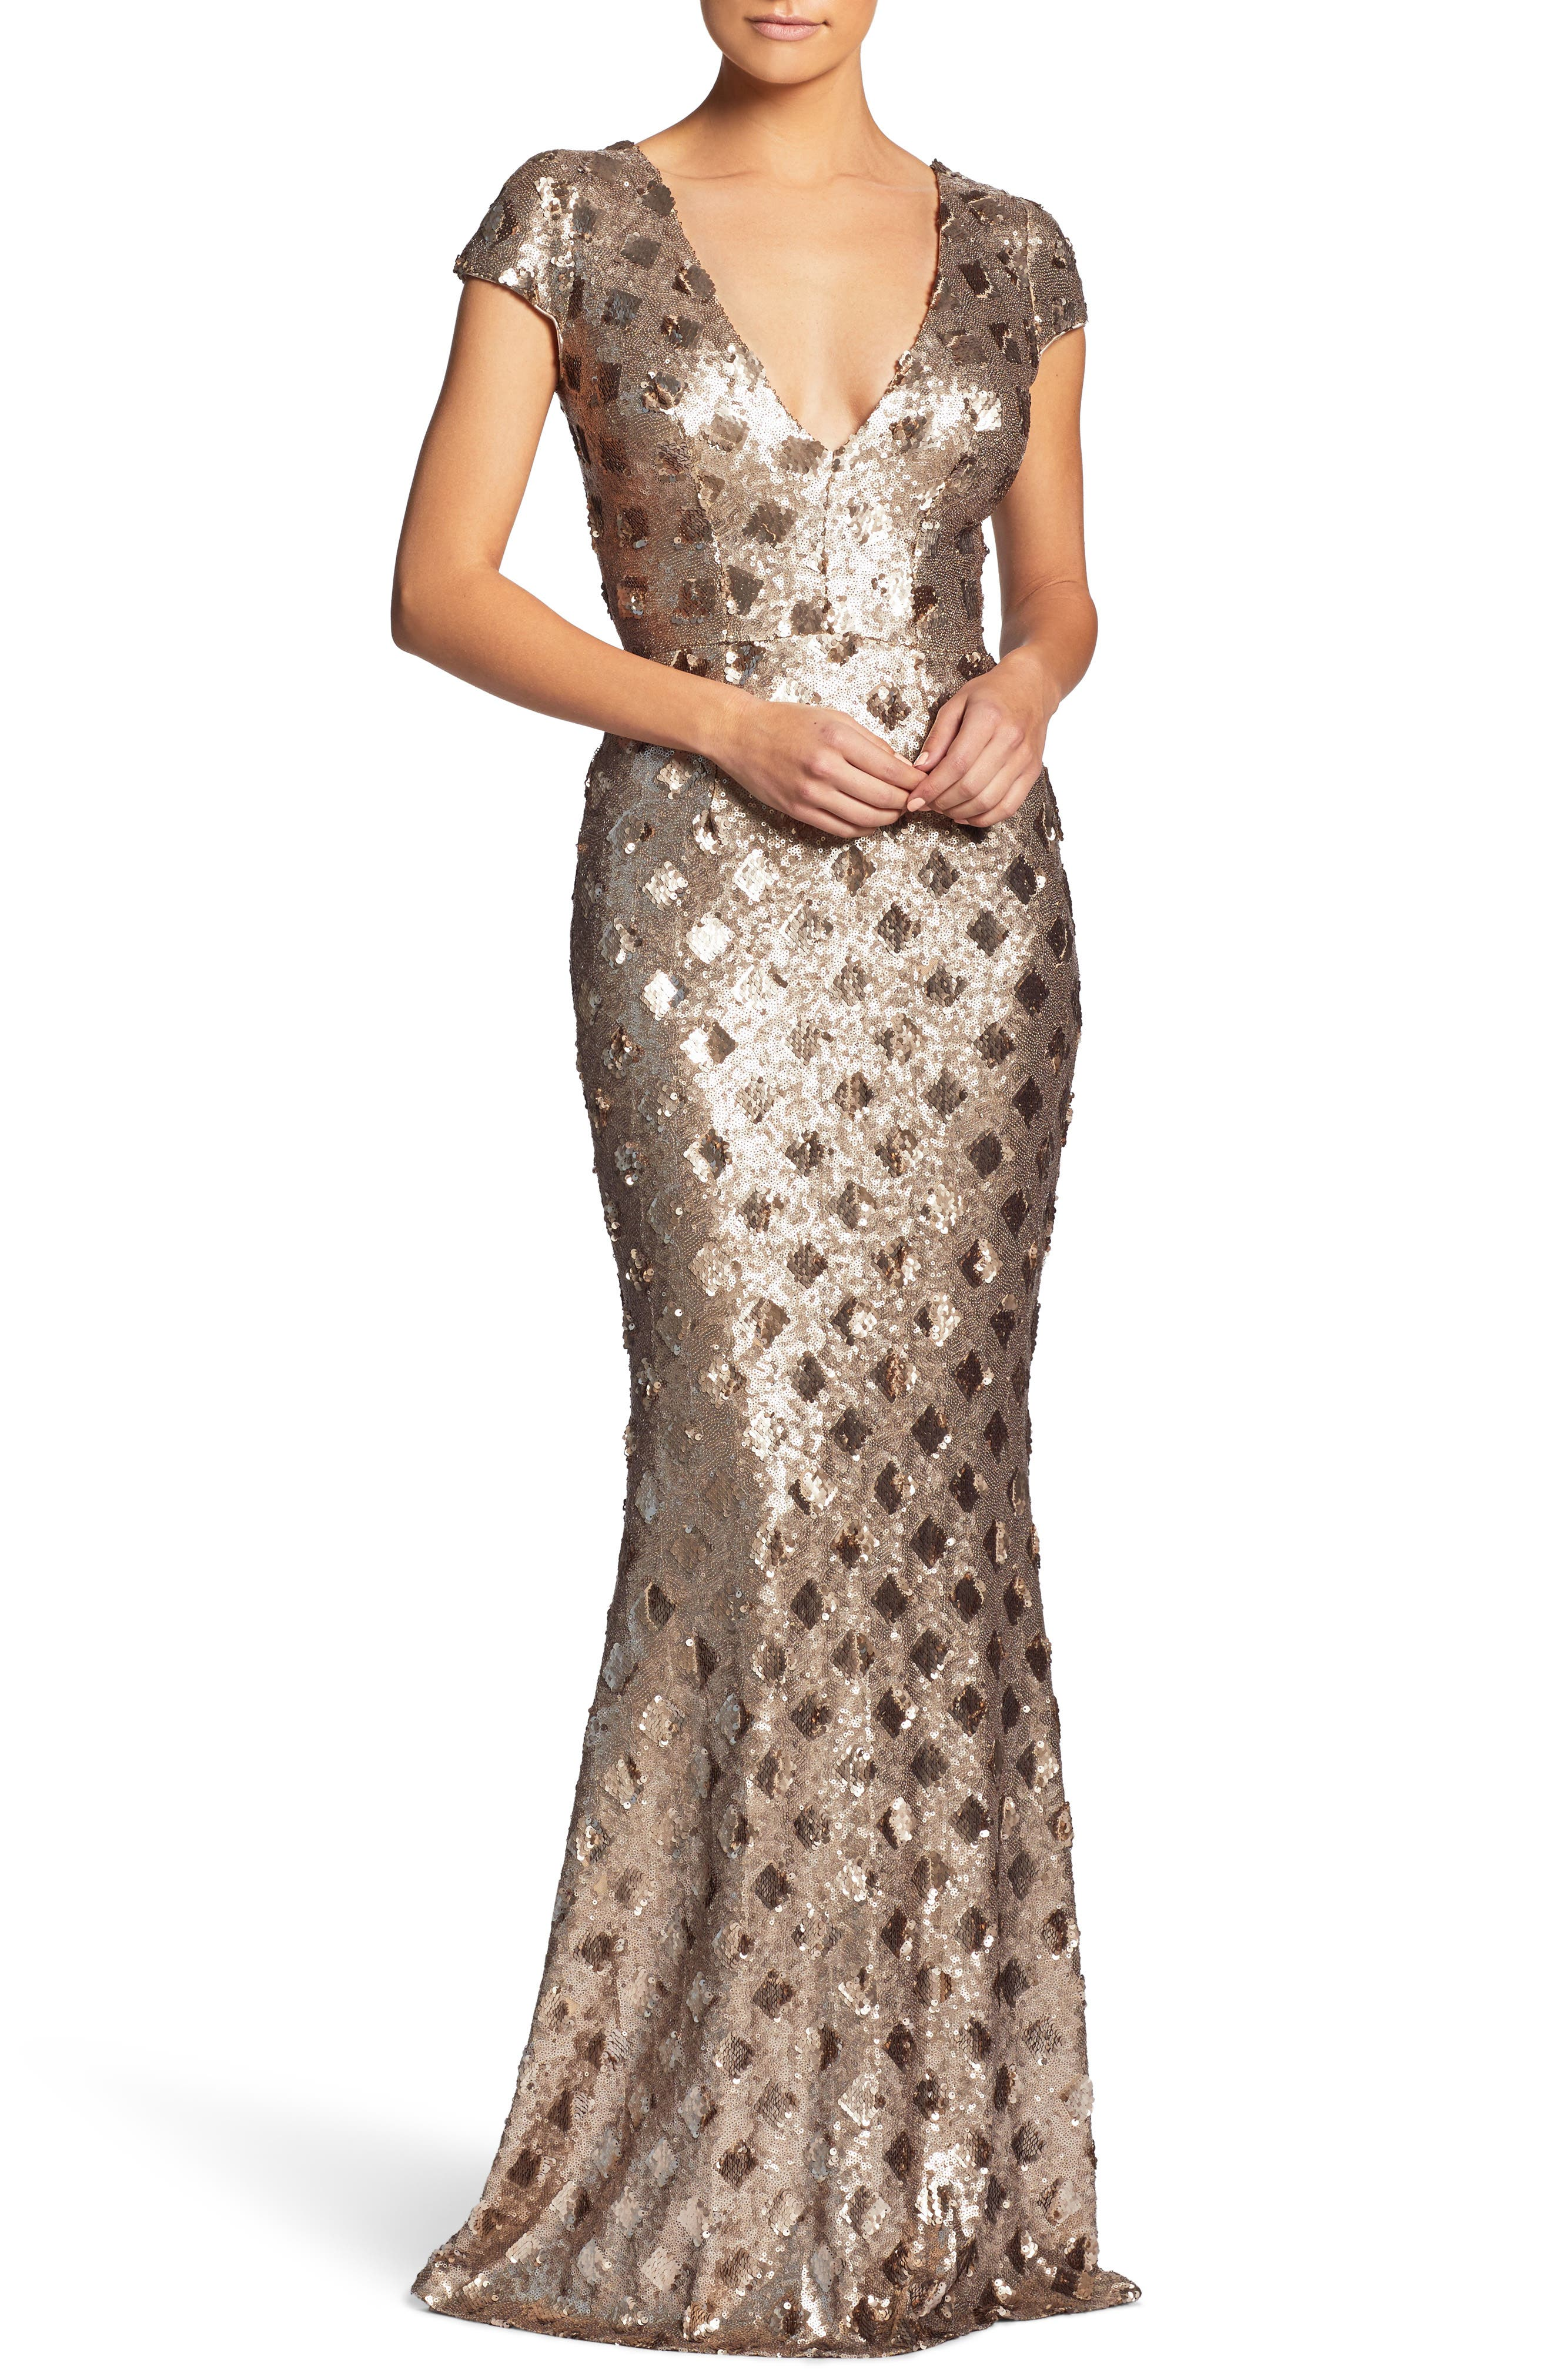 DRESS THE POPULATION Lina Patterned Sequin Trumpet Gown, Main, color, 710